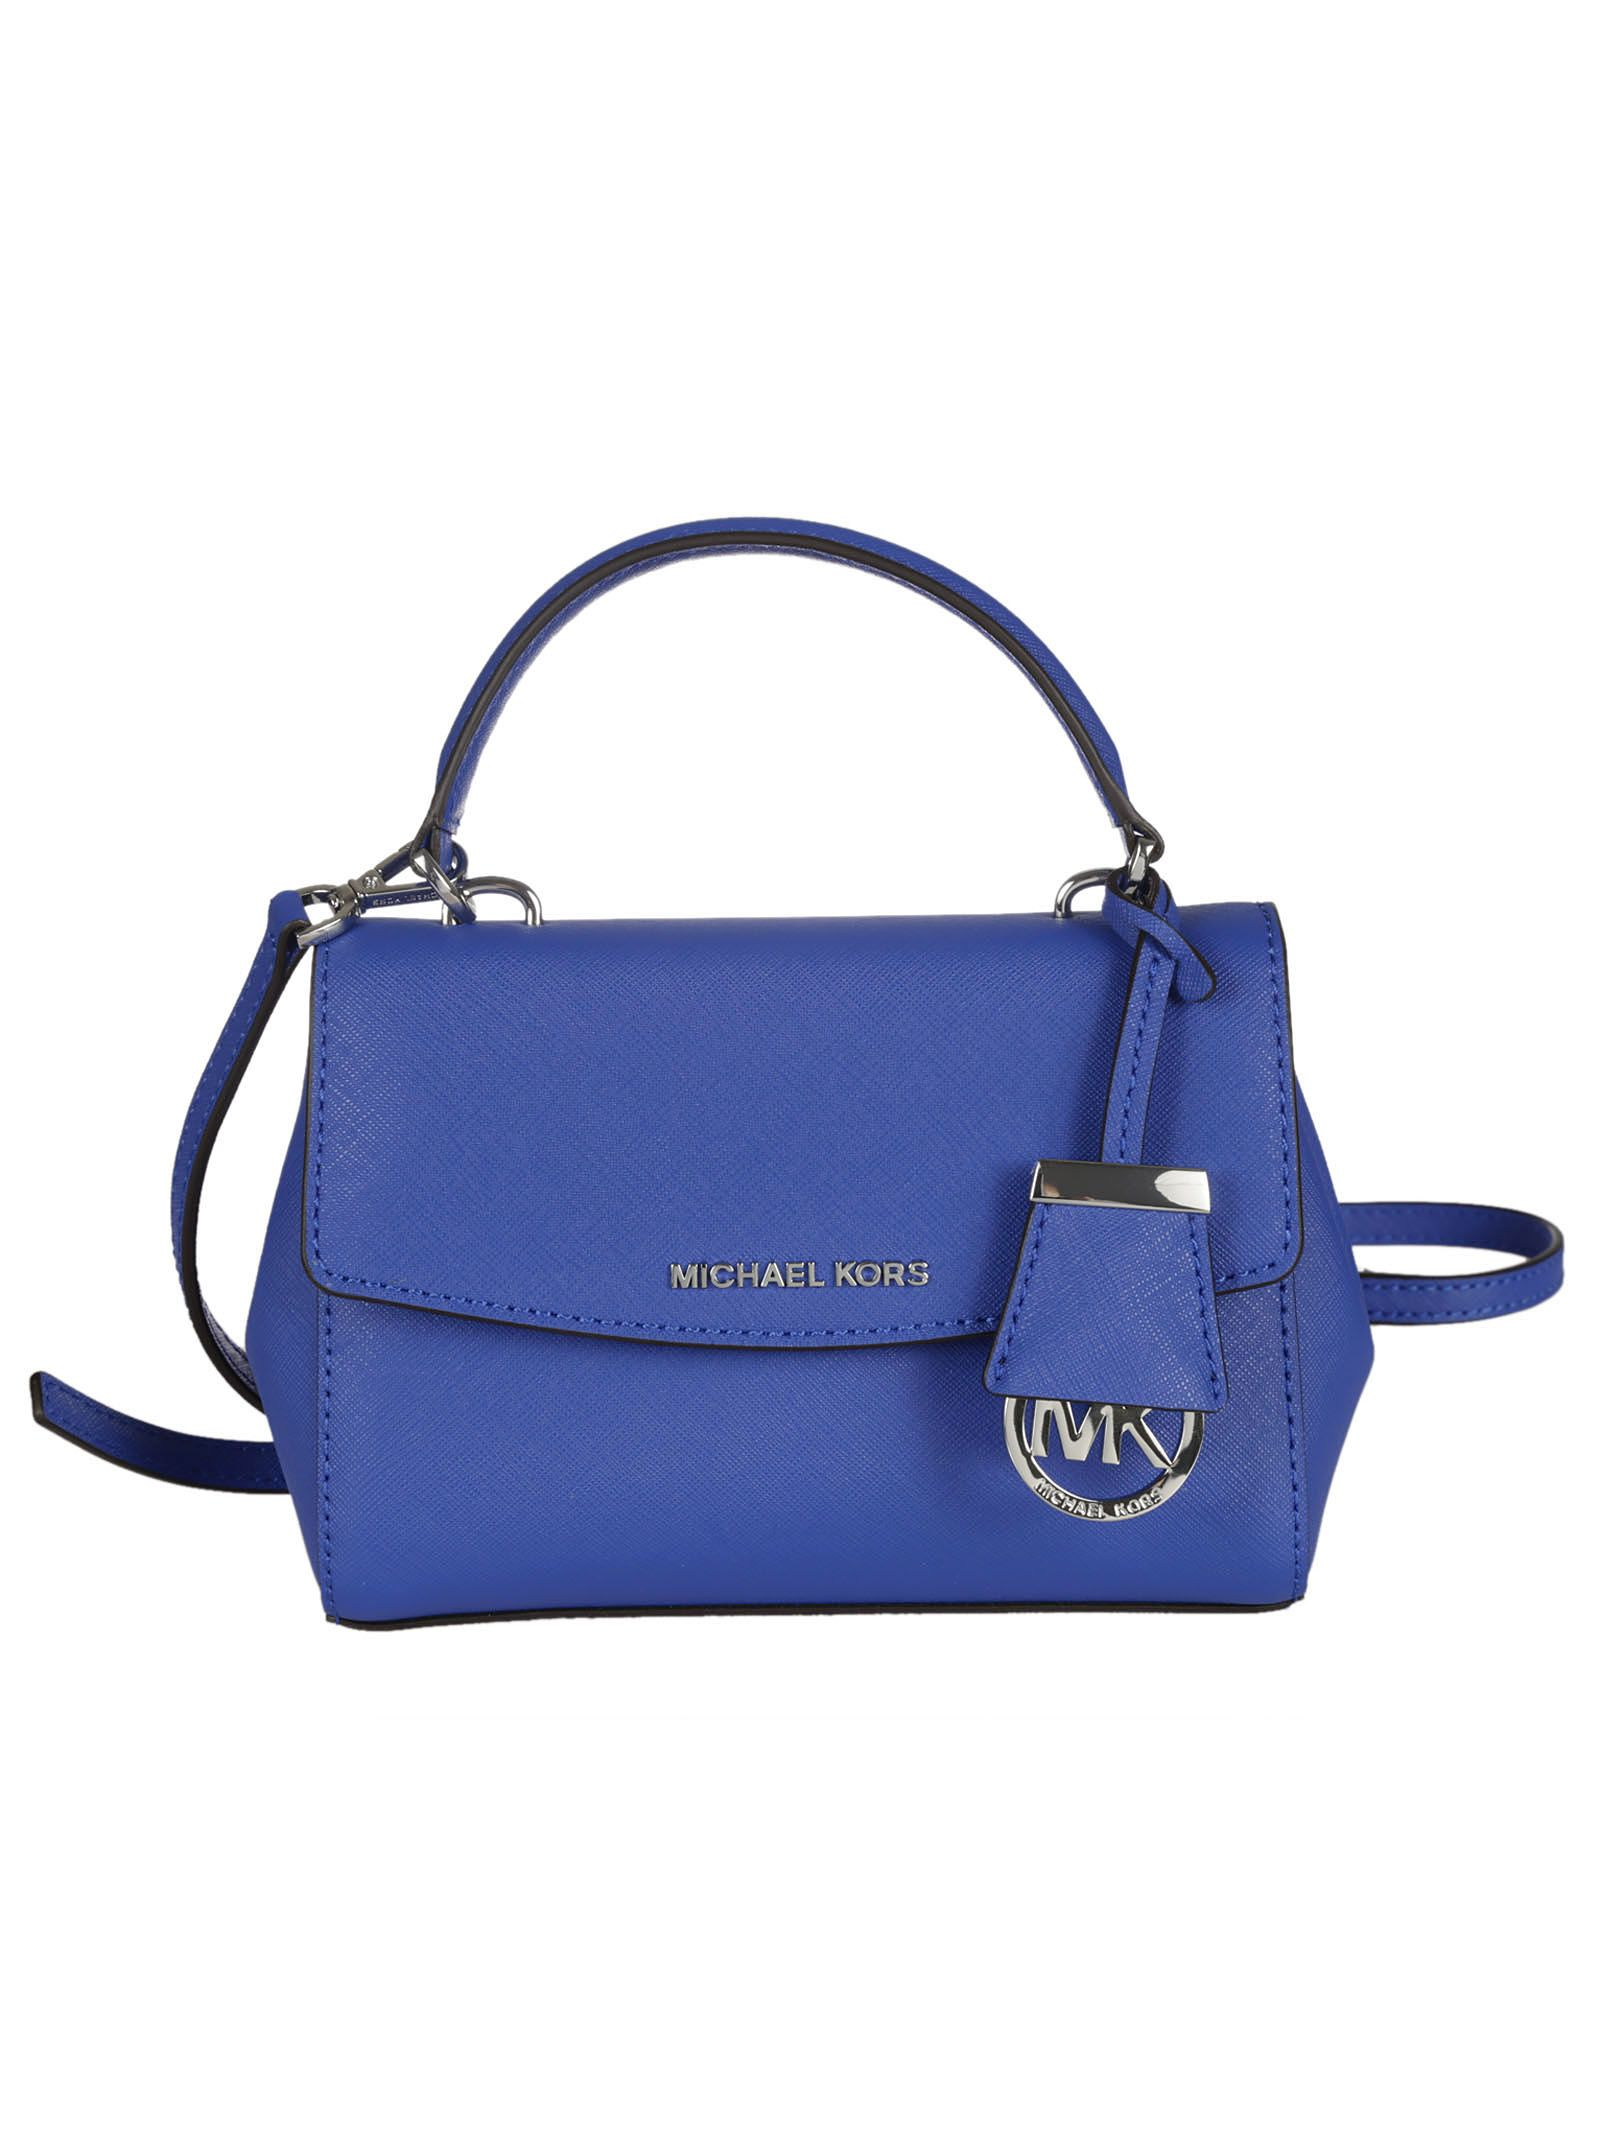 michael kors female 201920 electric blue ava extrasmall crossbody